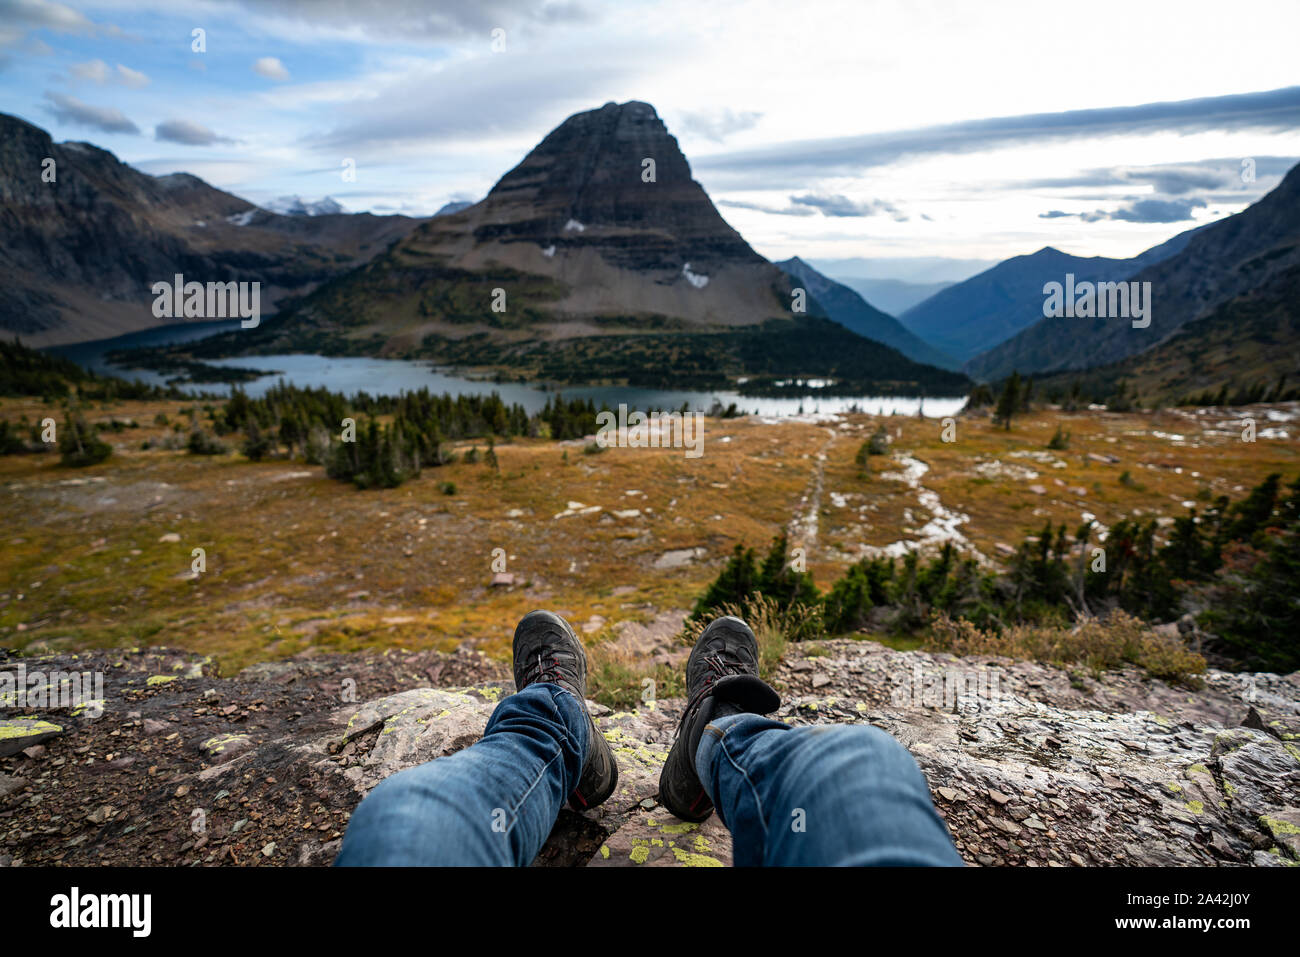 Photo from the Point of view of the photographer sitting down at the viewpoint at Hidden Lake, Montana. Stock Photo